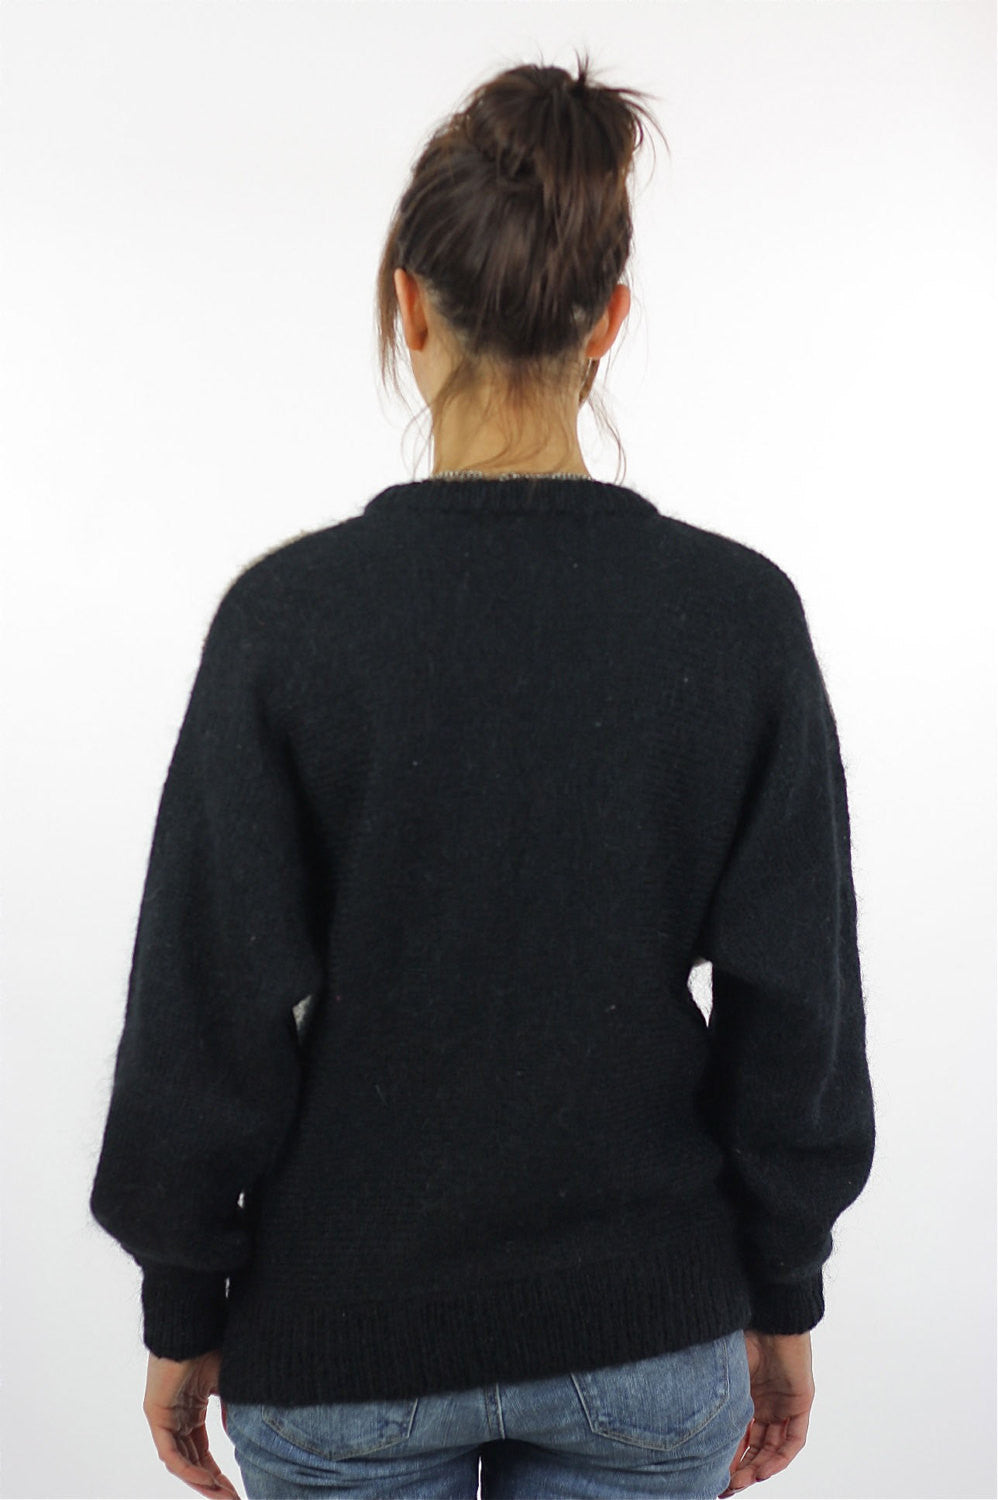 Geometric sweater Slouchy Color block Gray black beaded Vintage 80s  abstract retro print Oversized Large - 73999309a